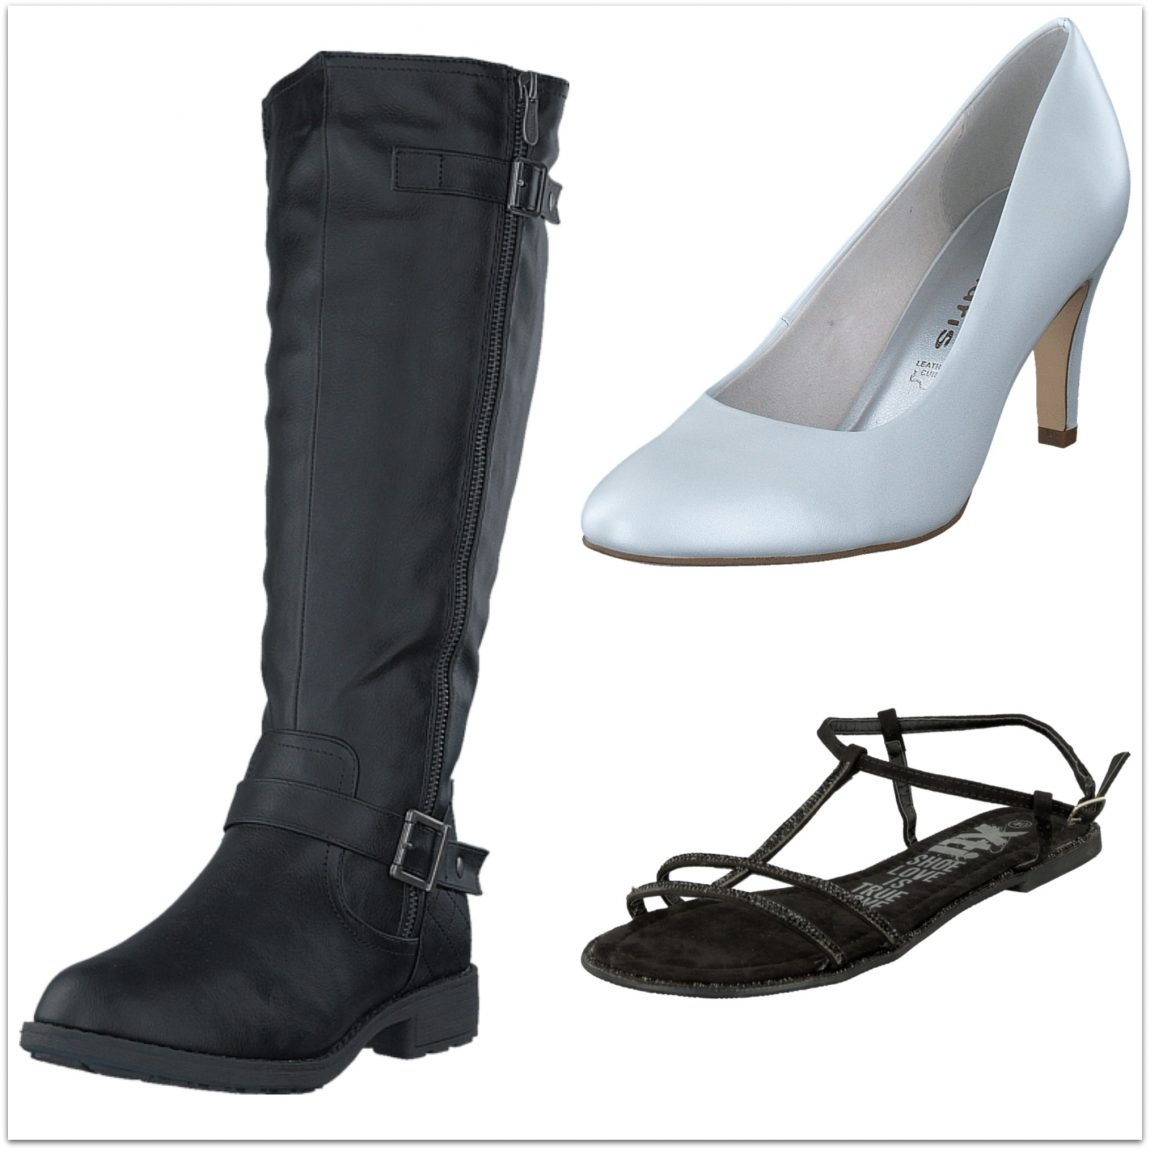 an image showing three pairs of footwear - black calf length boots, white court shoes and black diamante sandals